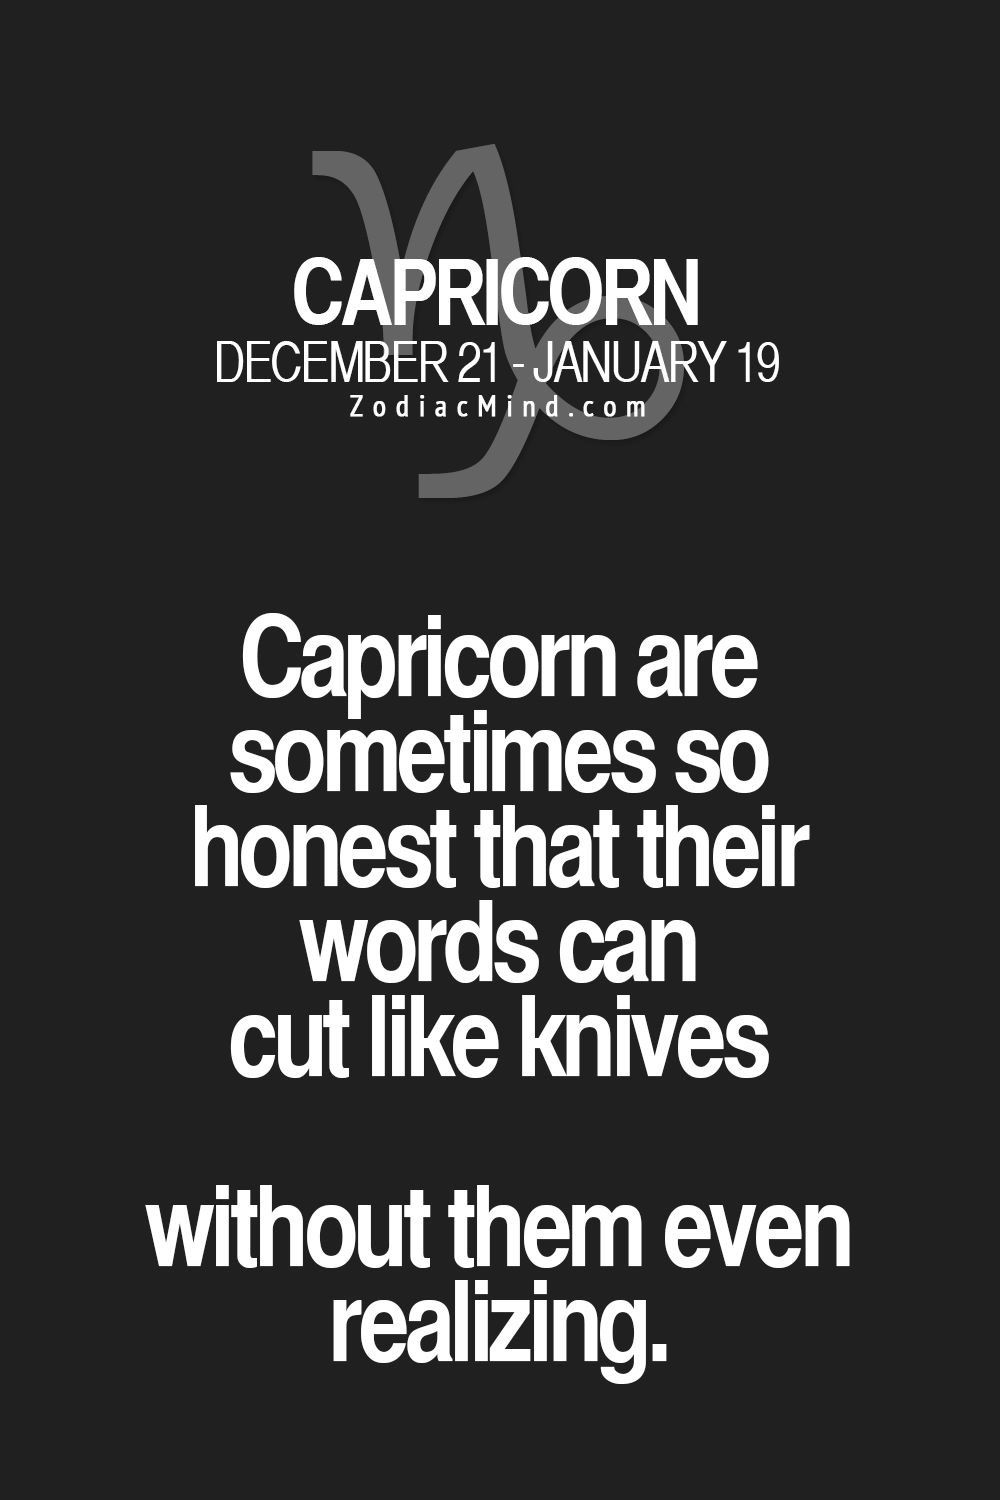 Capricorn - we say it like it is. Its not to hurt anyone